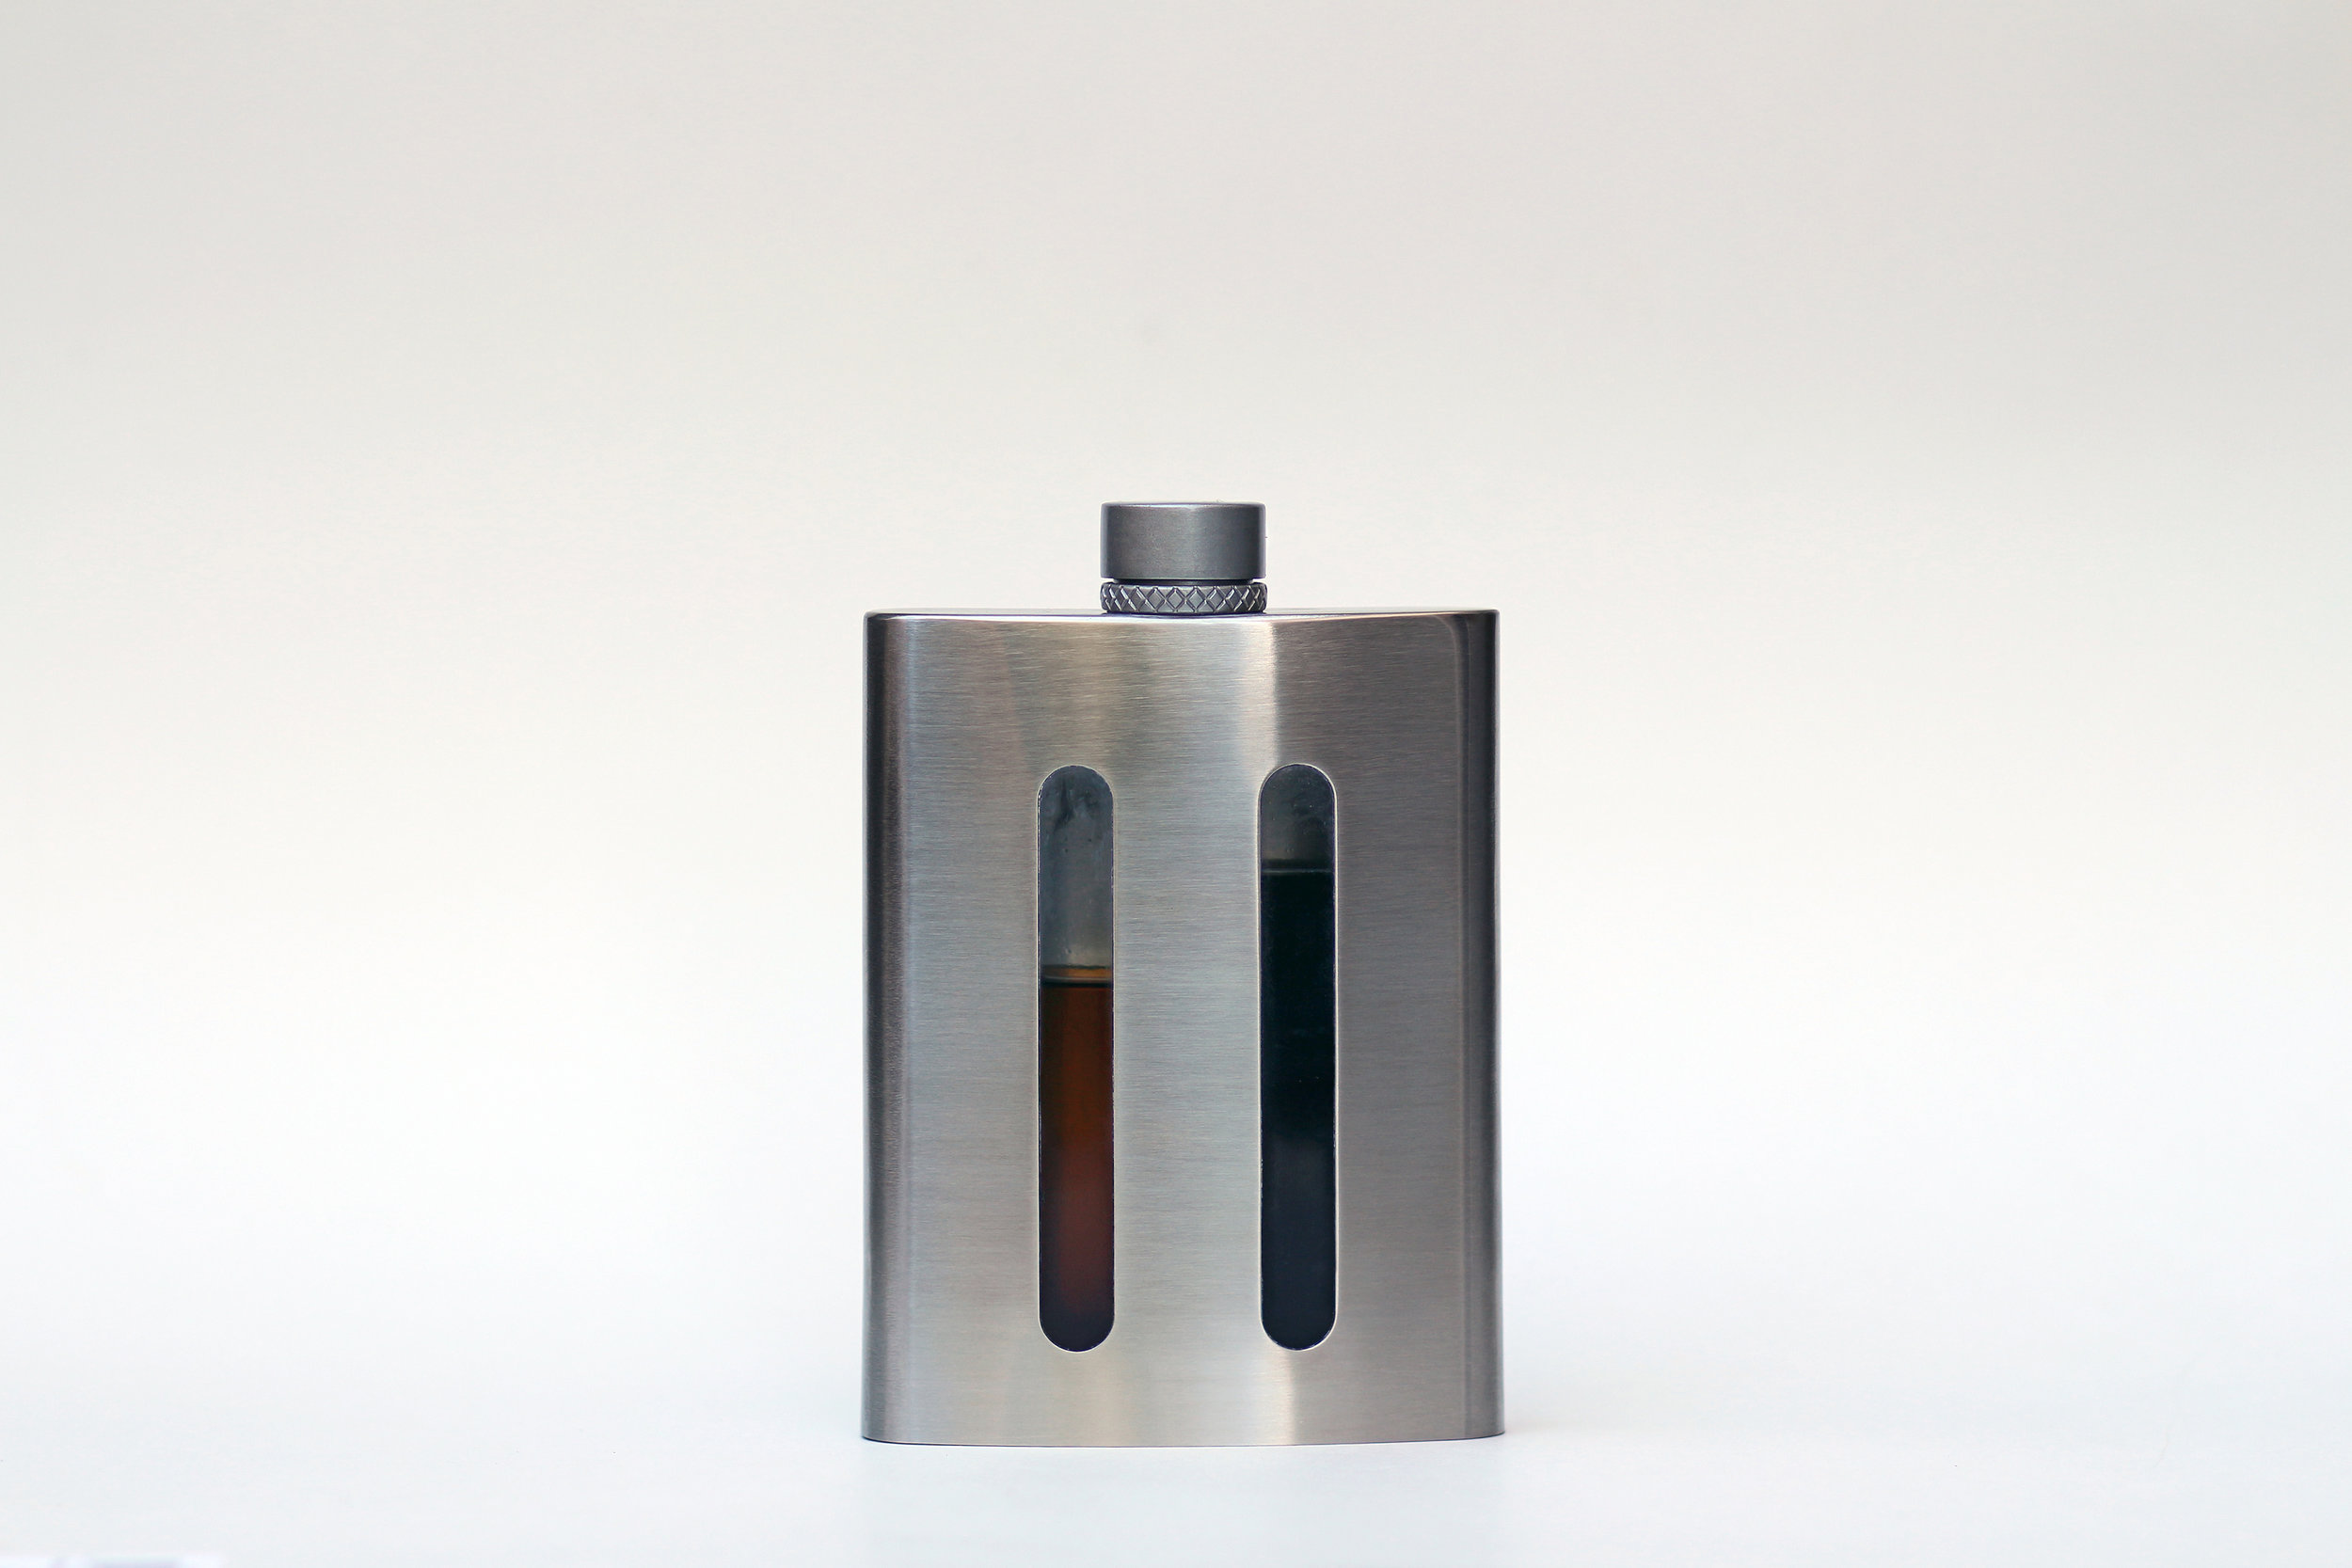 The World's first dual chambered hip flask